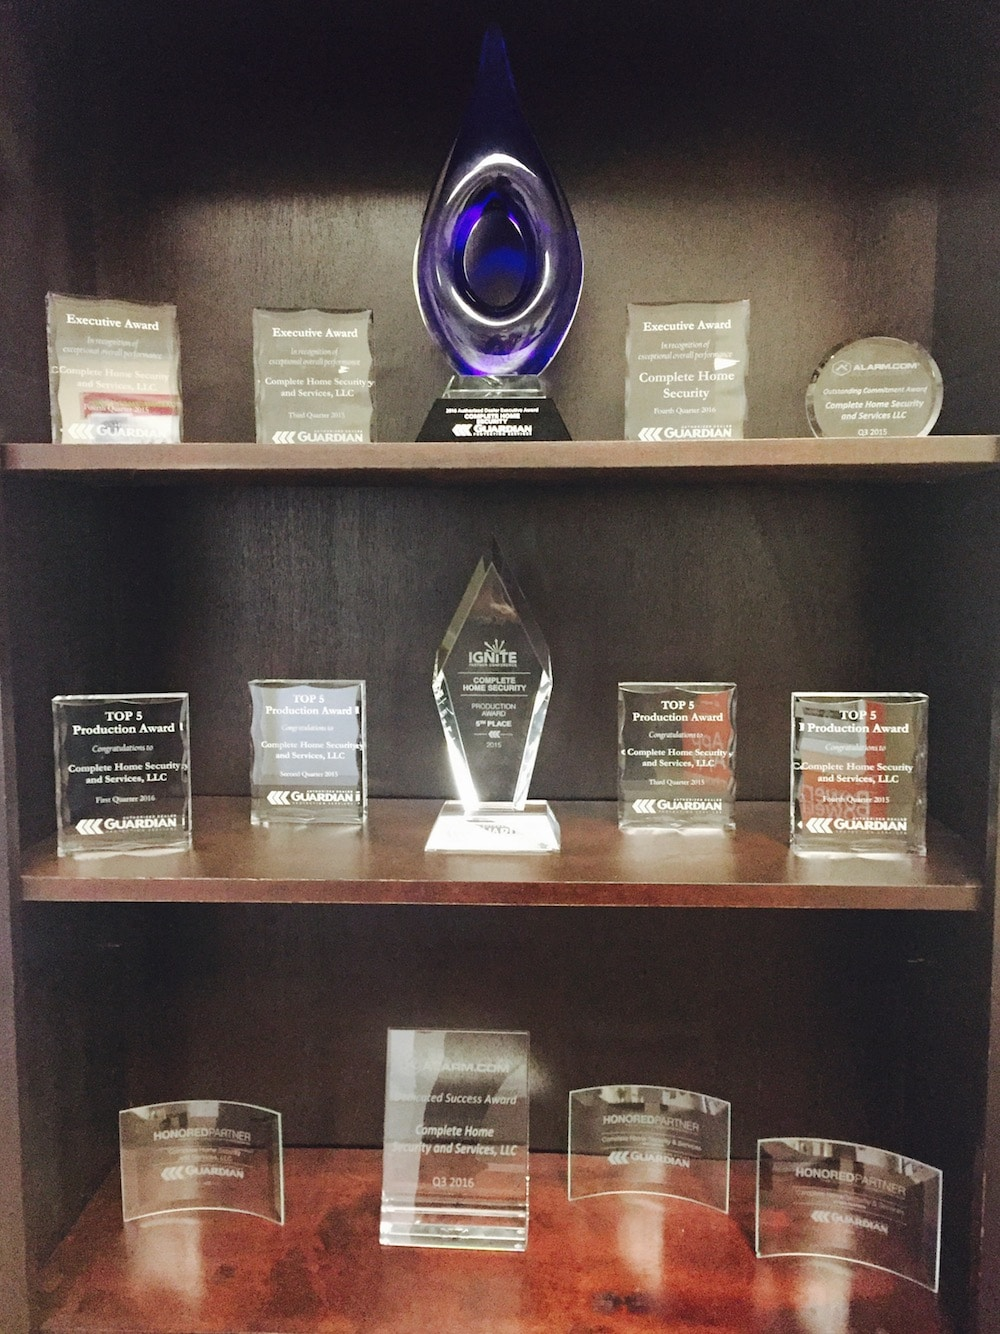 Awards Complete Home Security and Services has won over the years